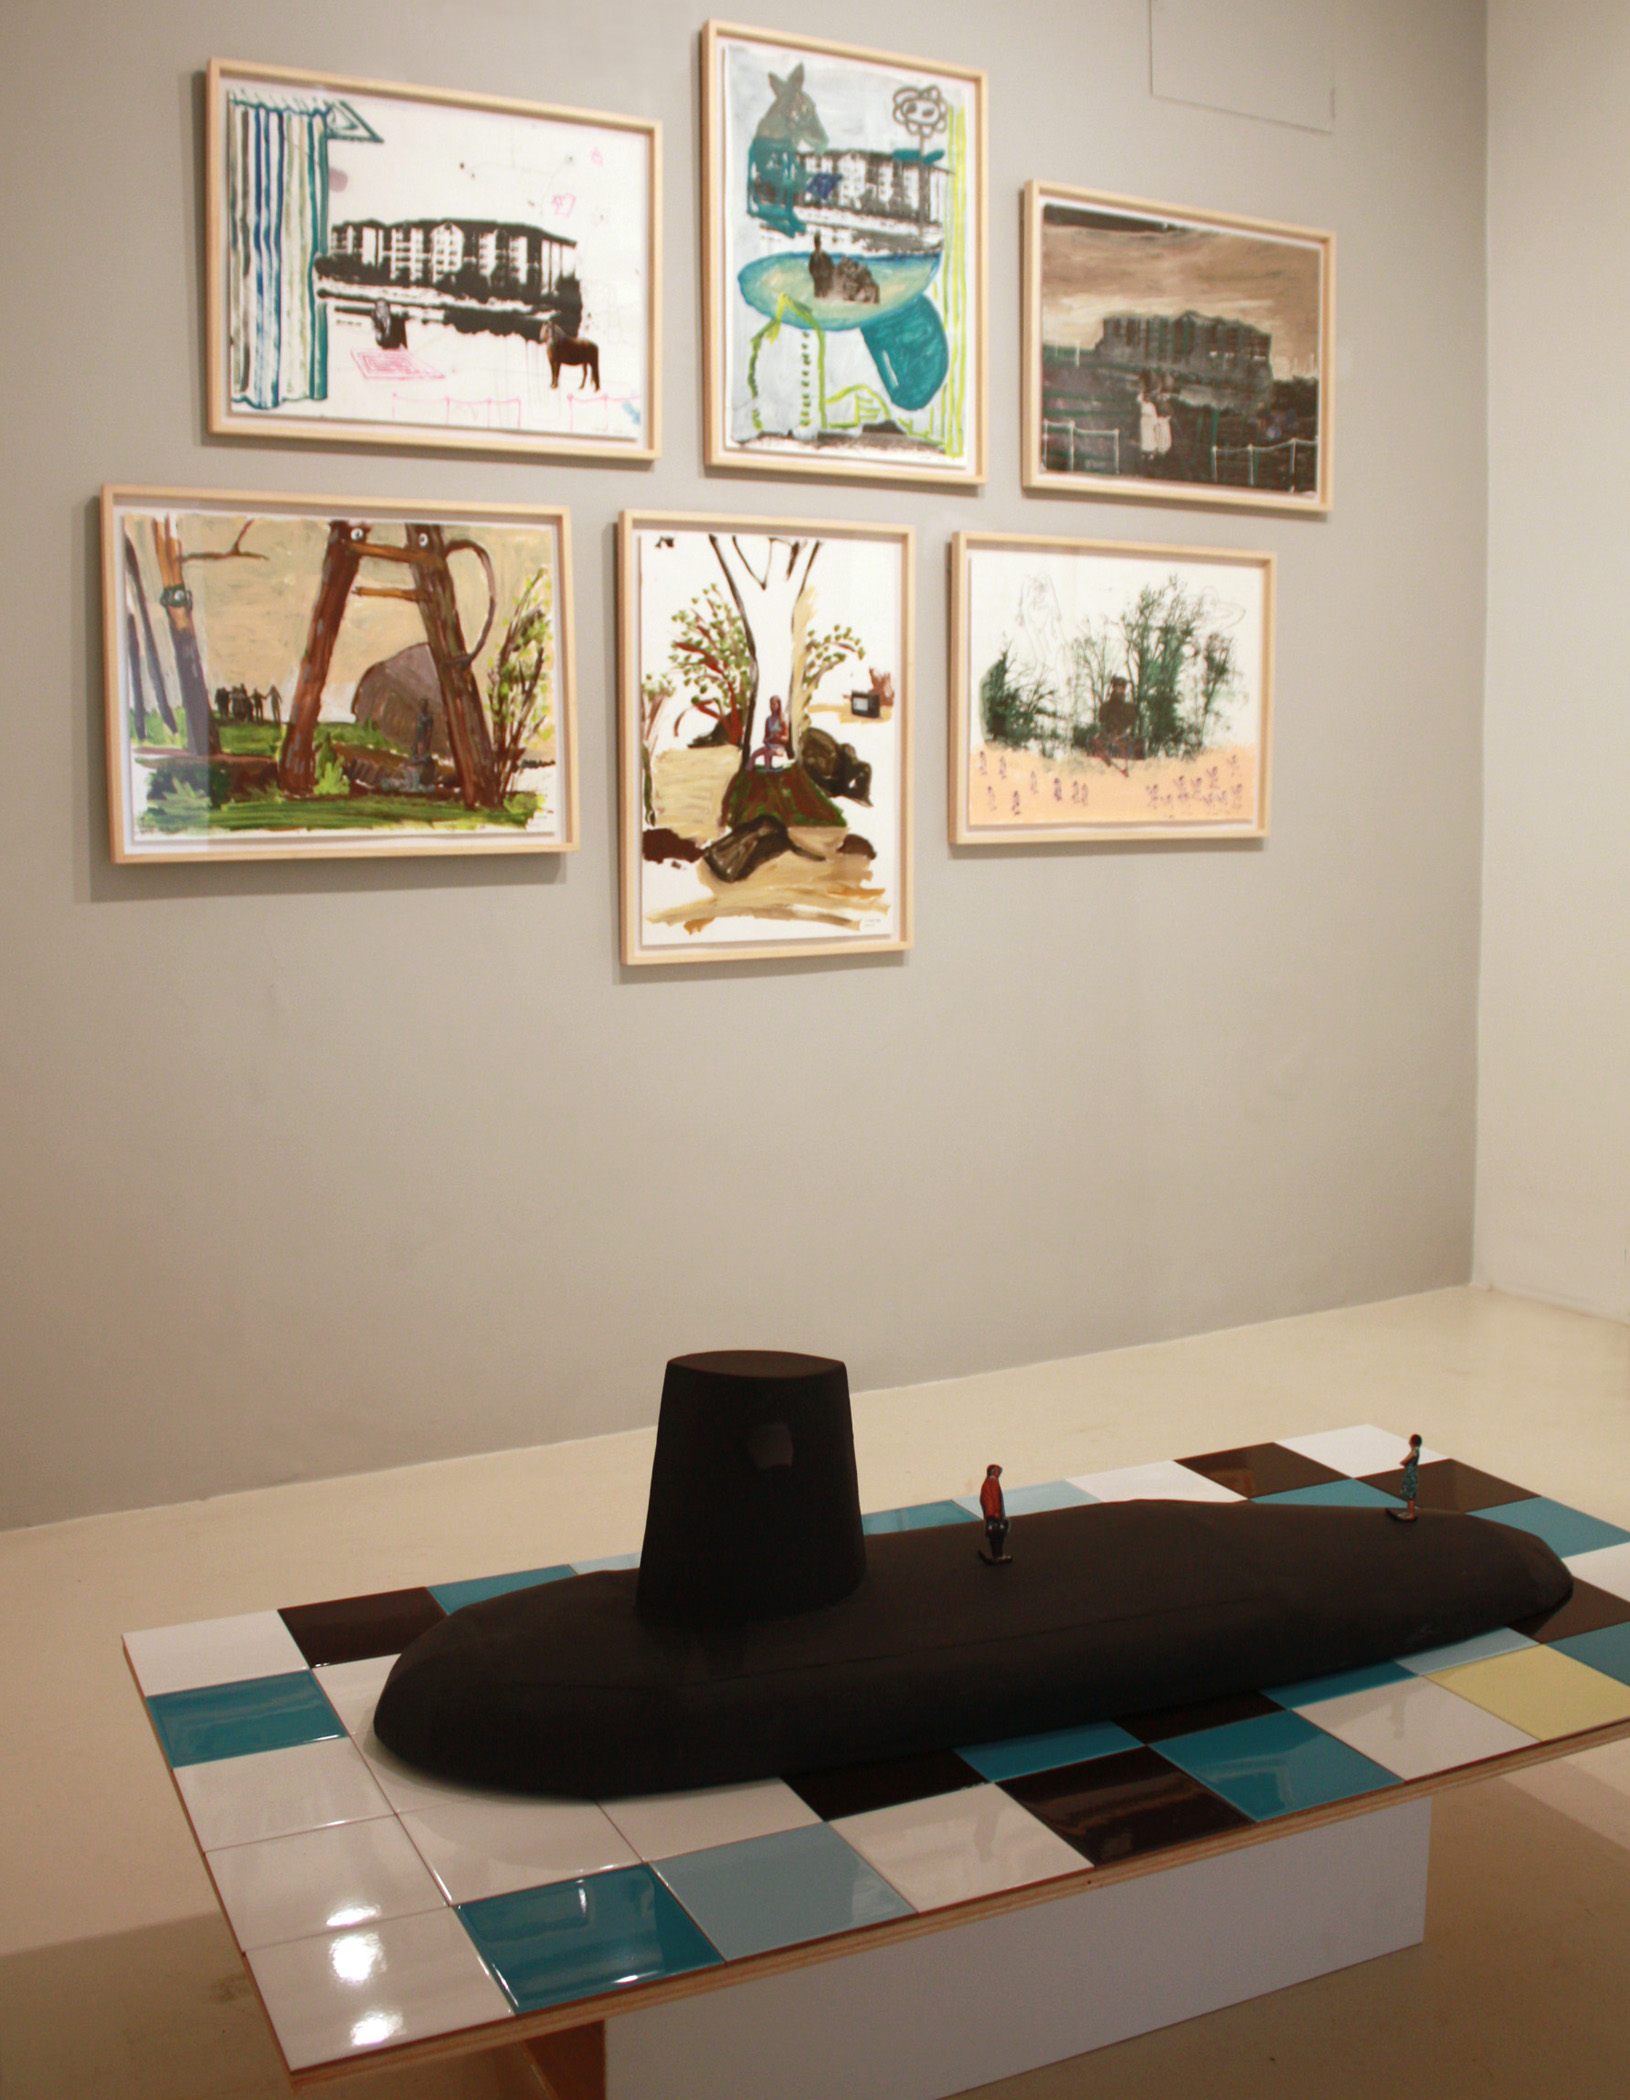 Exhibition view from Juan Ugalde, 2012